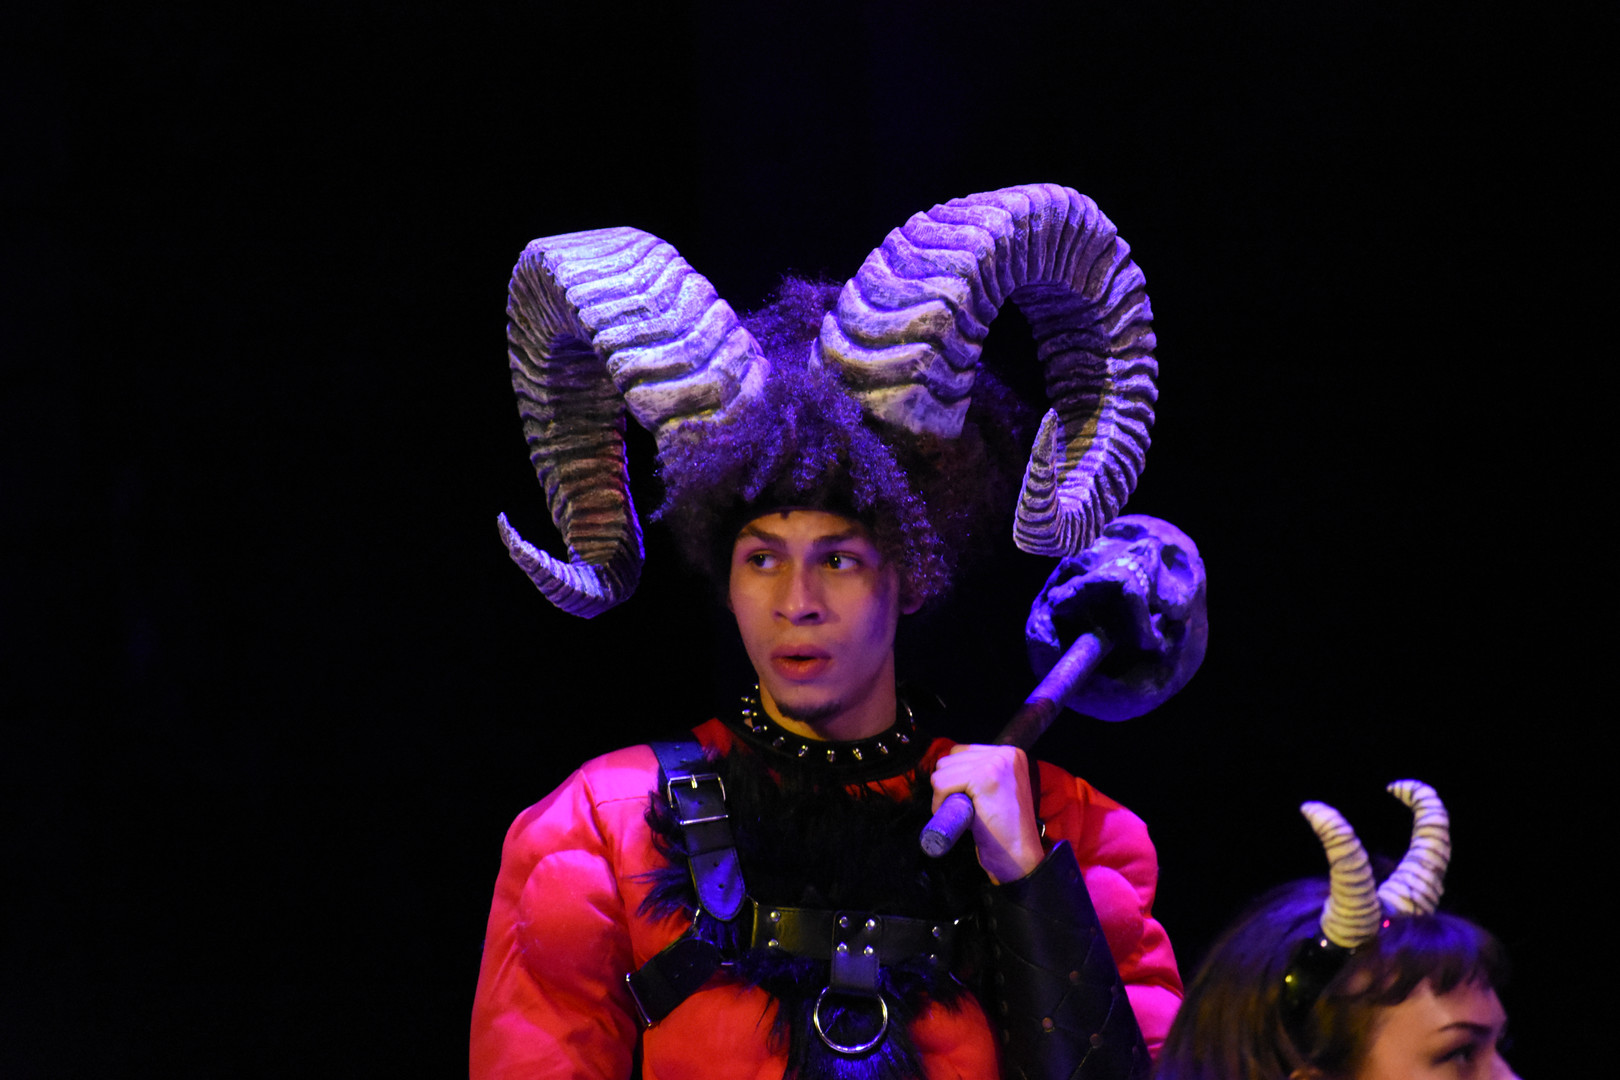 Orcus Horns